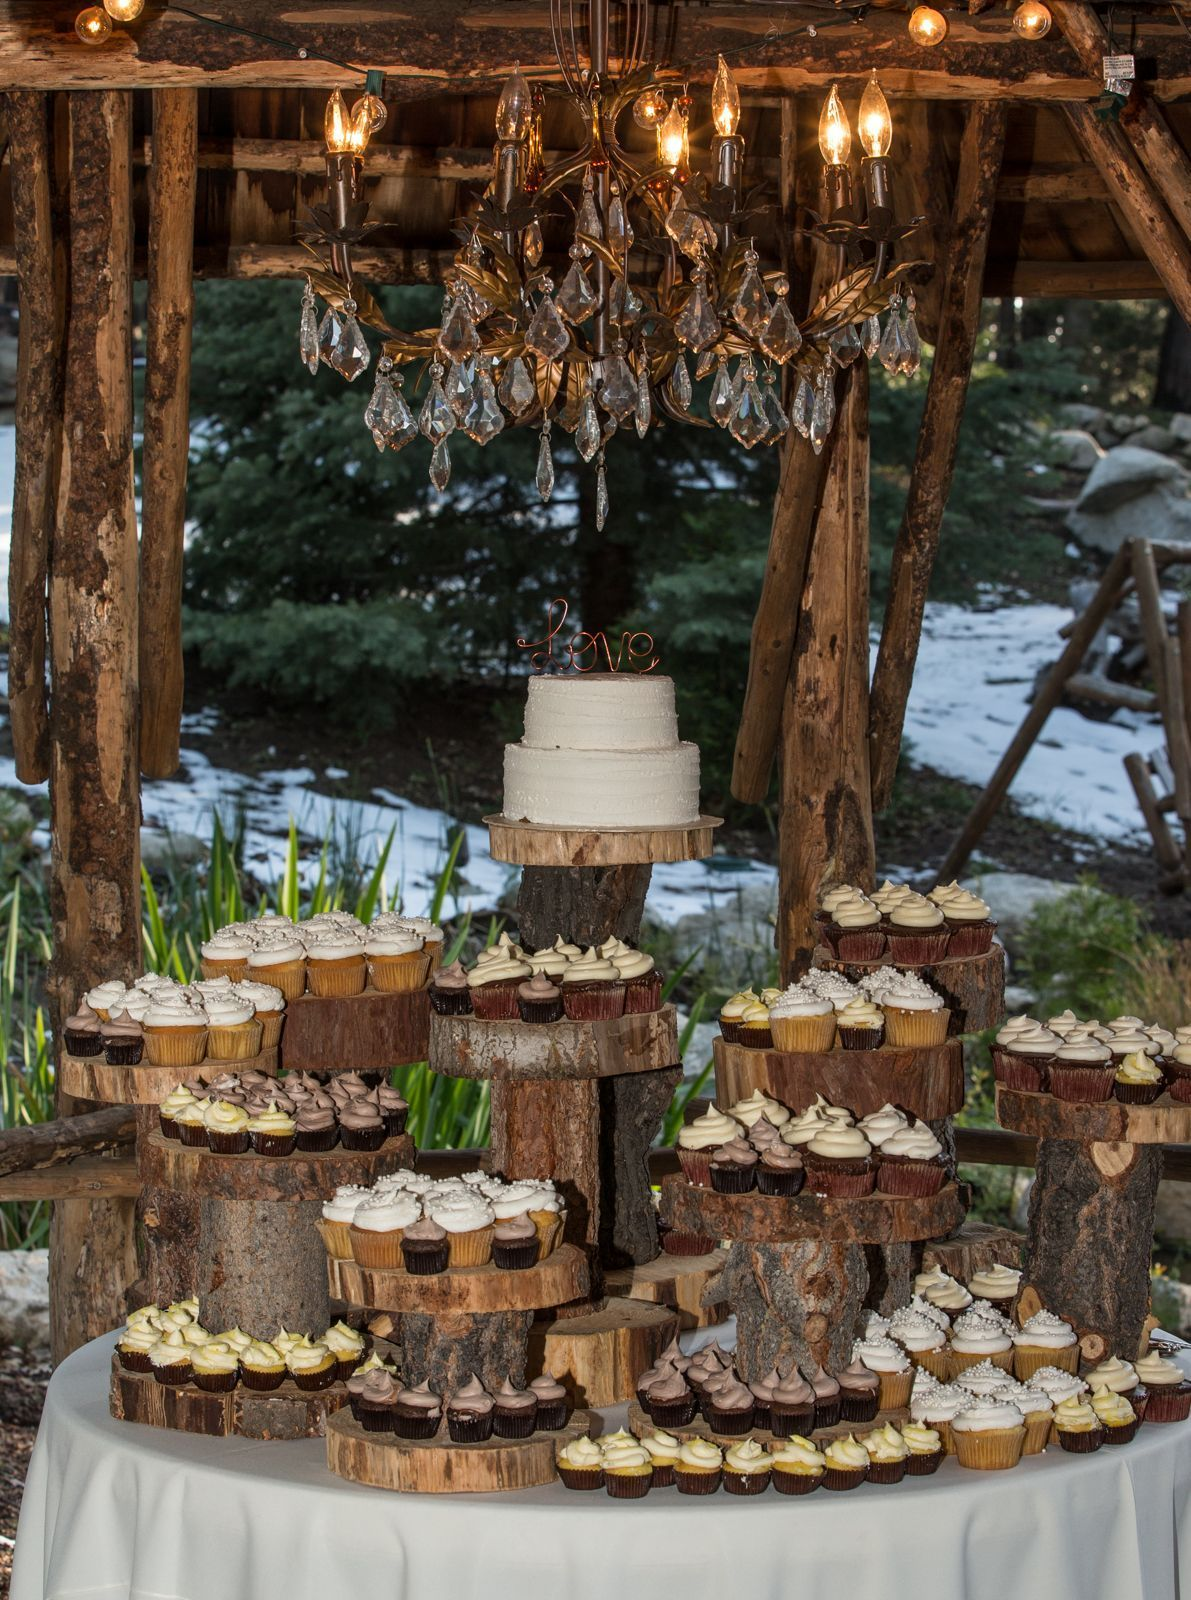 2 tiered wedding cake with cupcakes is an alternative to a